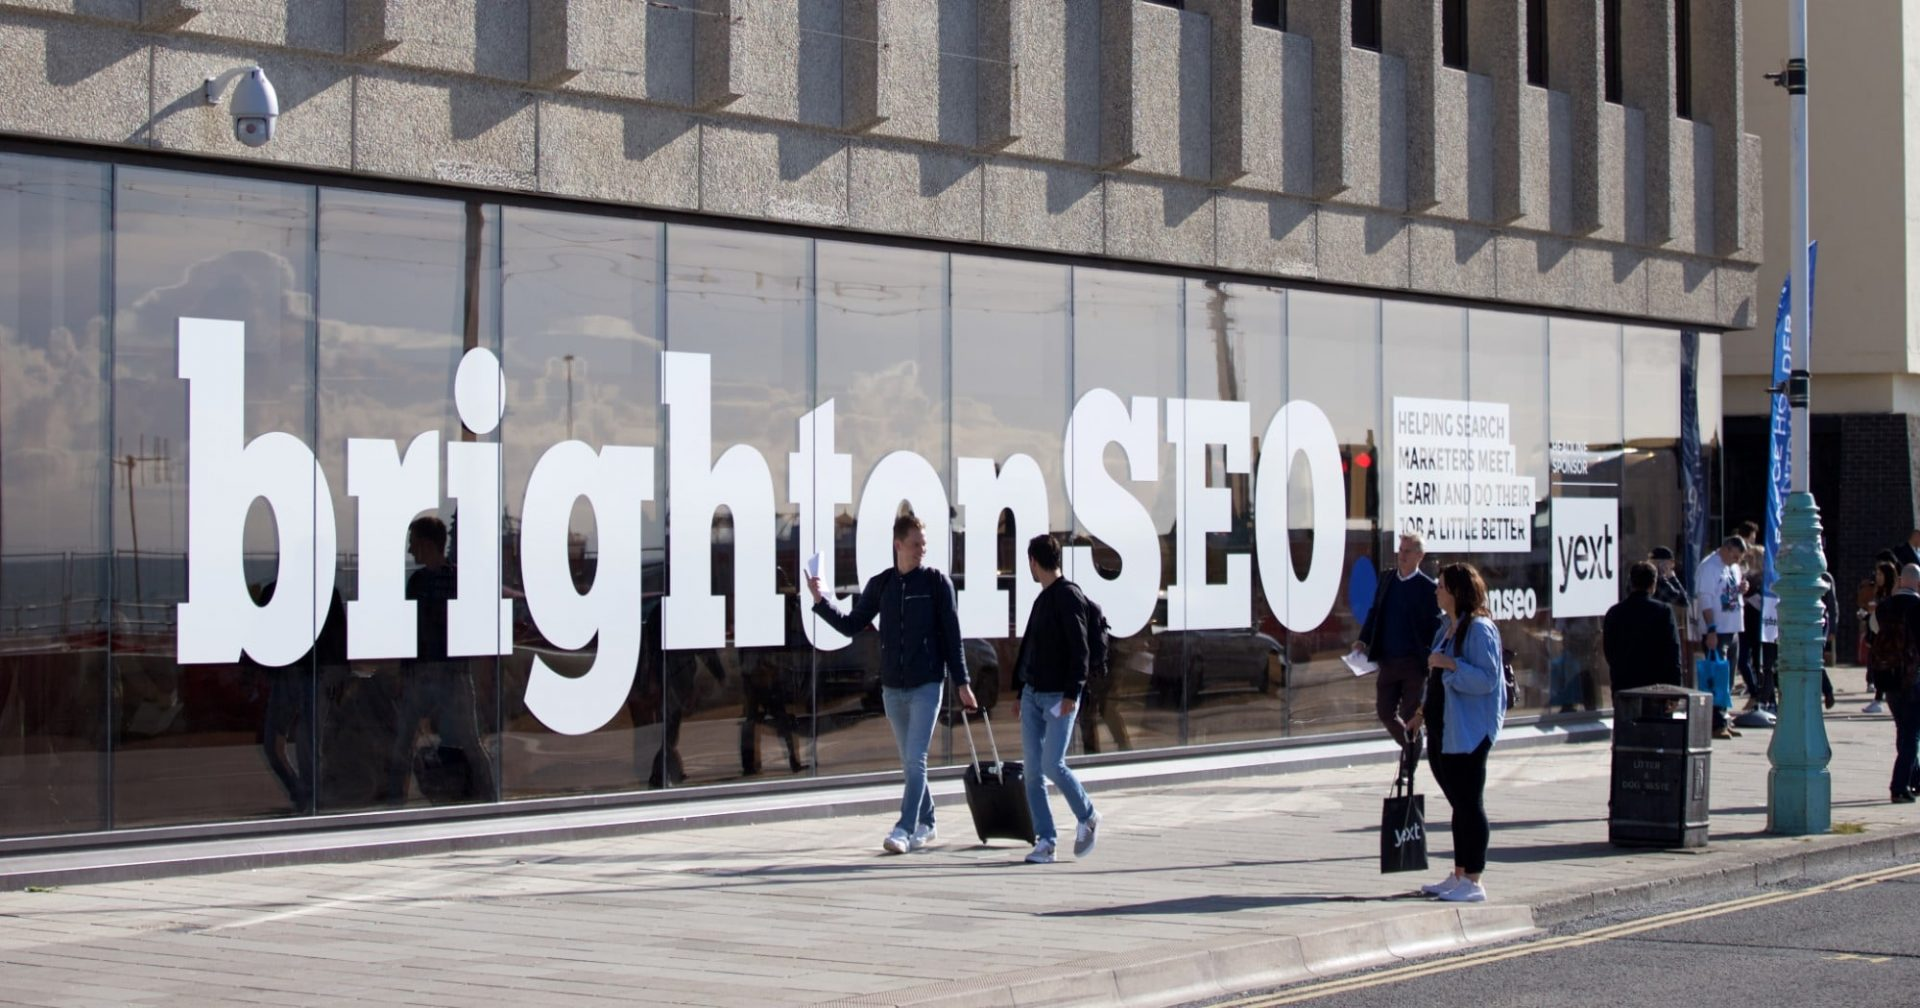 BrightonSEO front window